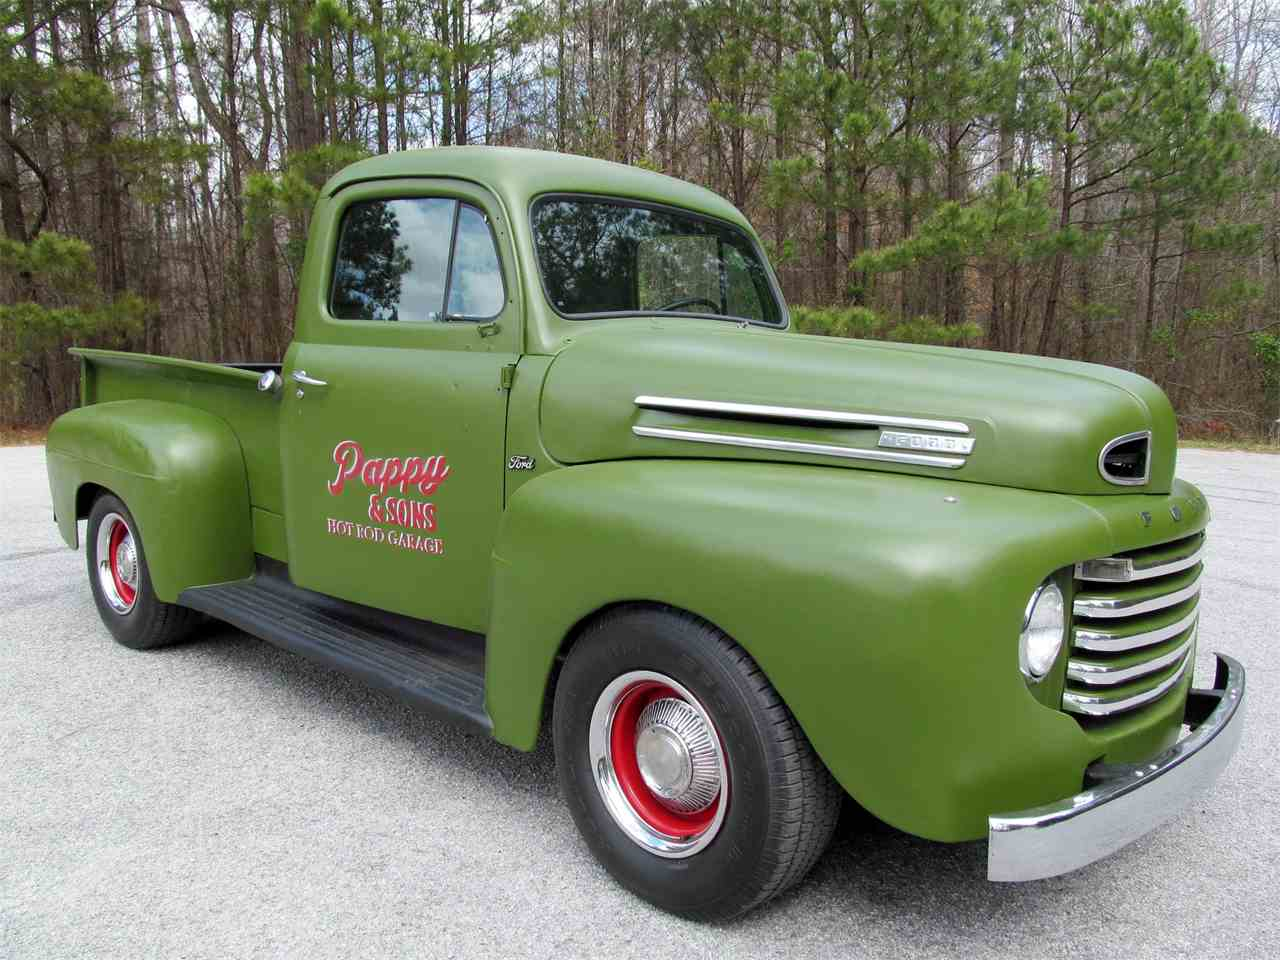 Craigslist Louisville Kentucky Cars And Trucks >> 1951 ford truck craigslist free image